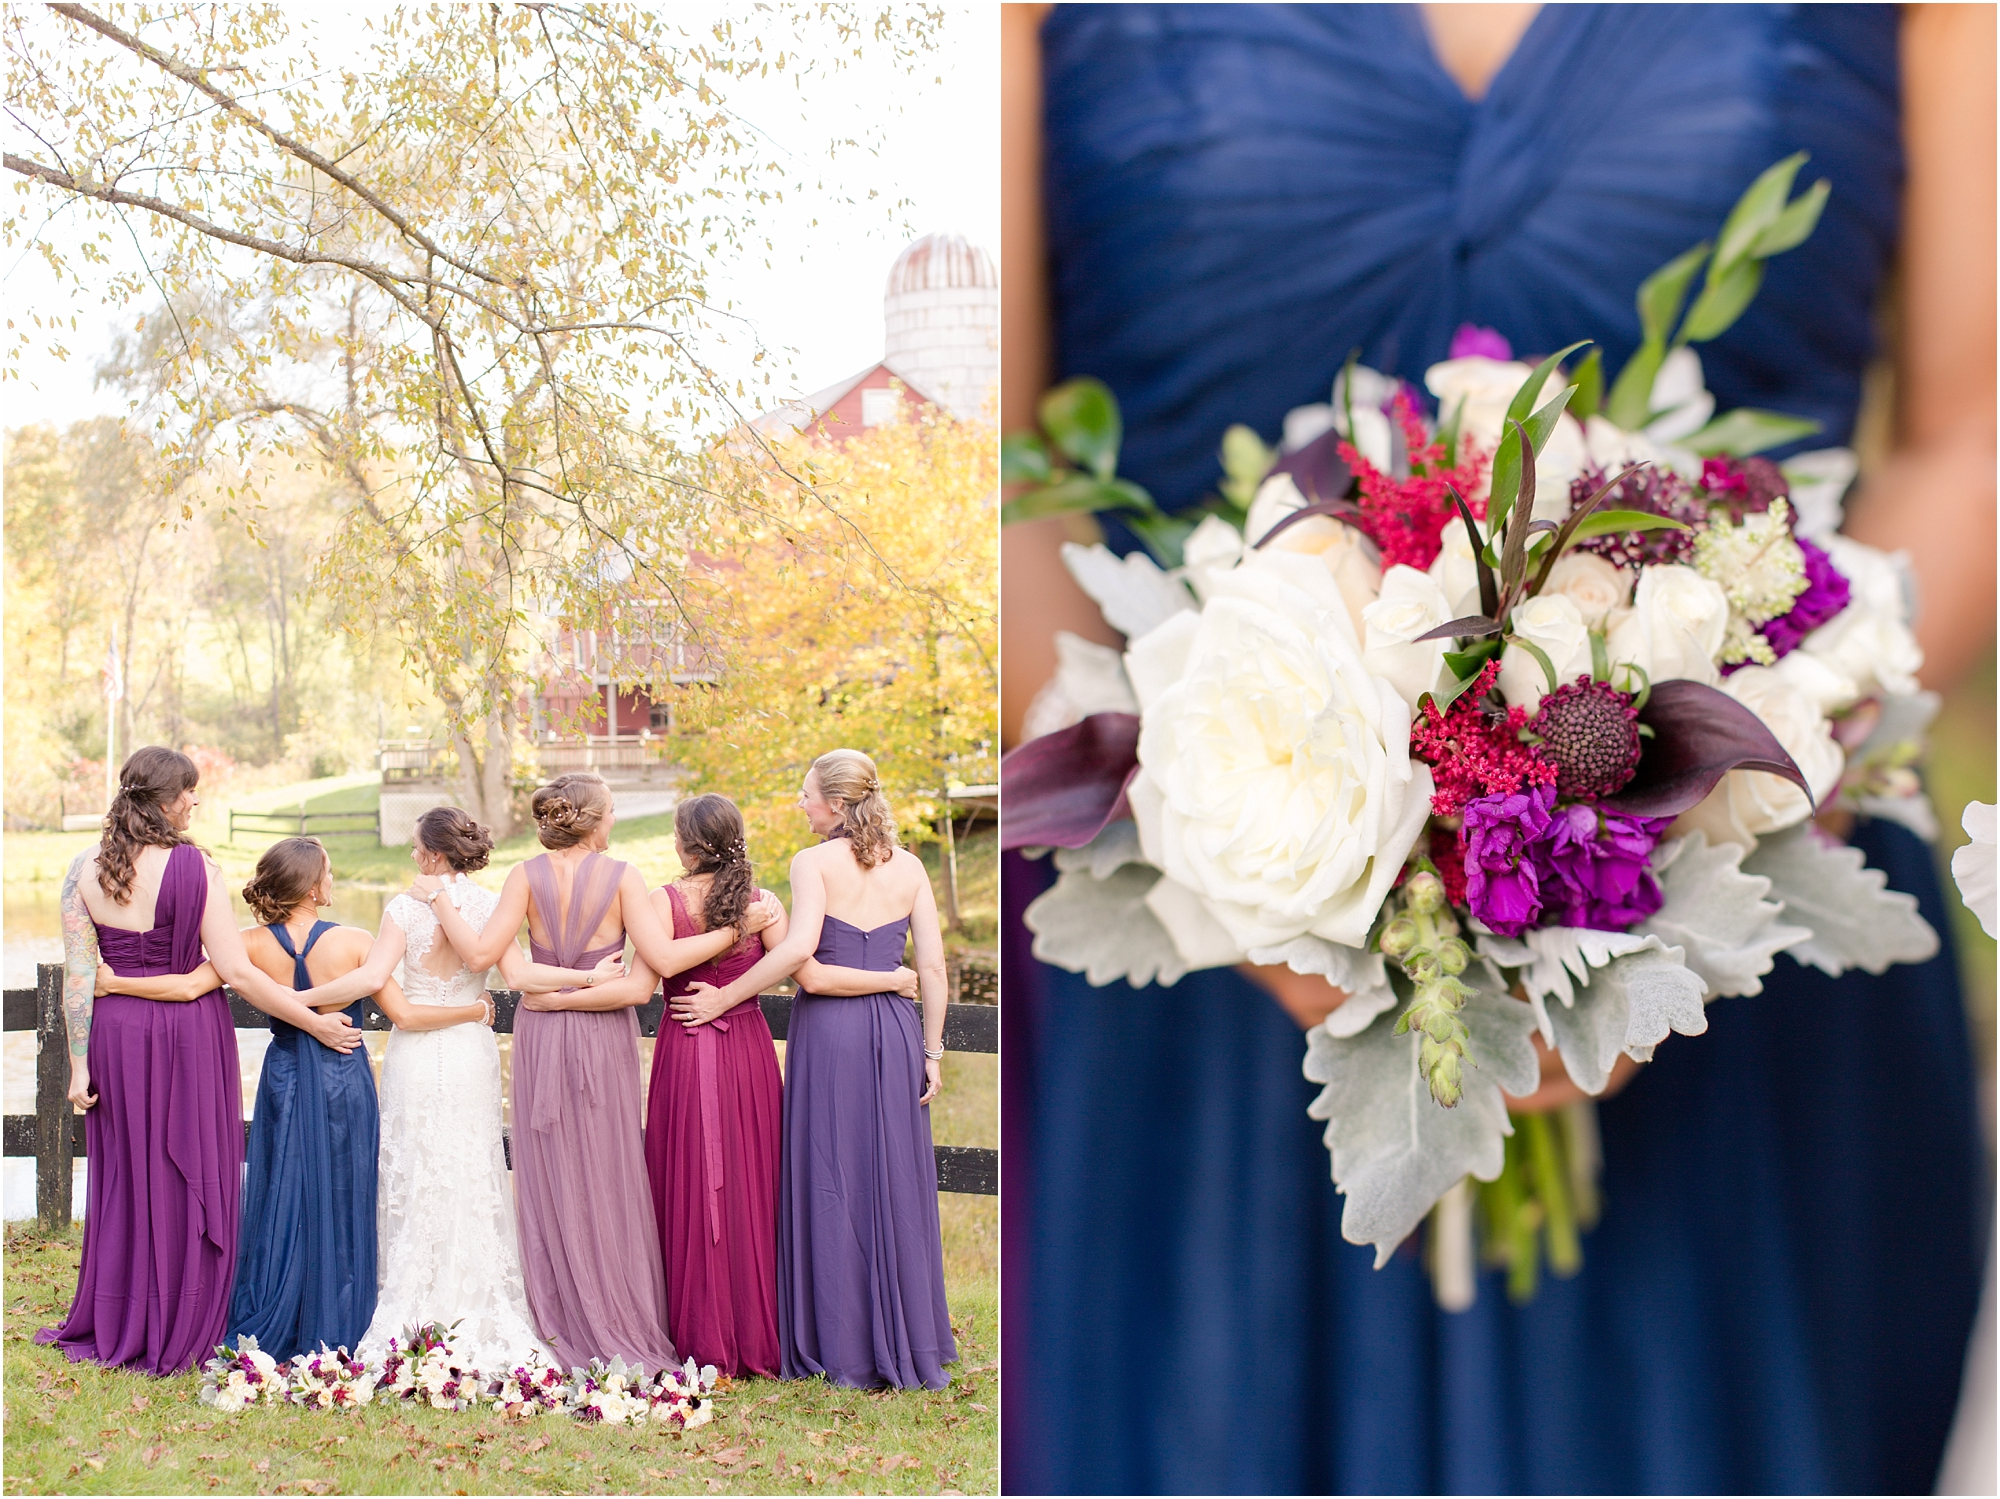 Bird 4. Bridal Party-433_anna grace photography baltimore maryland wedding photographer chanteclaire wedding photo.jpg